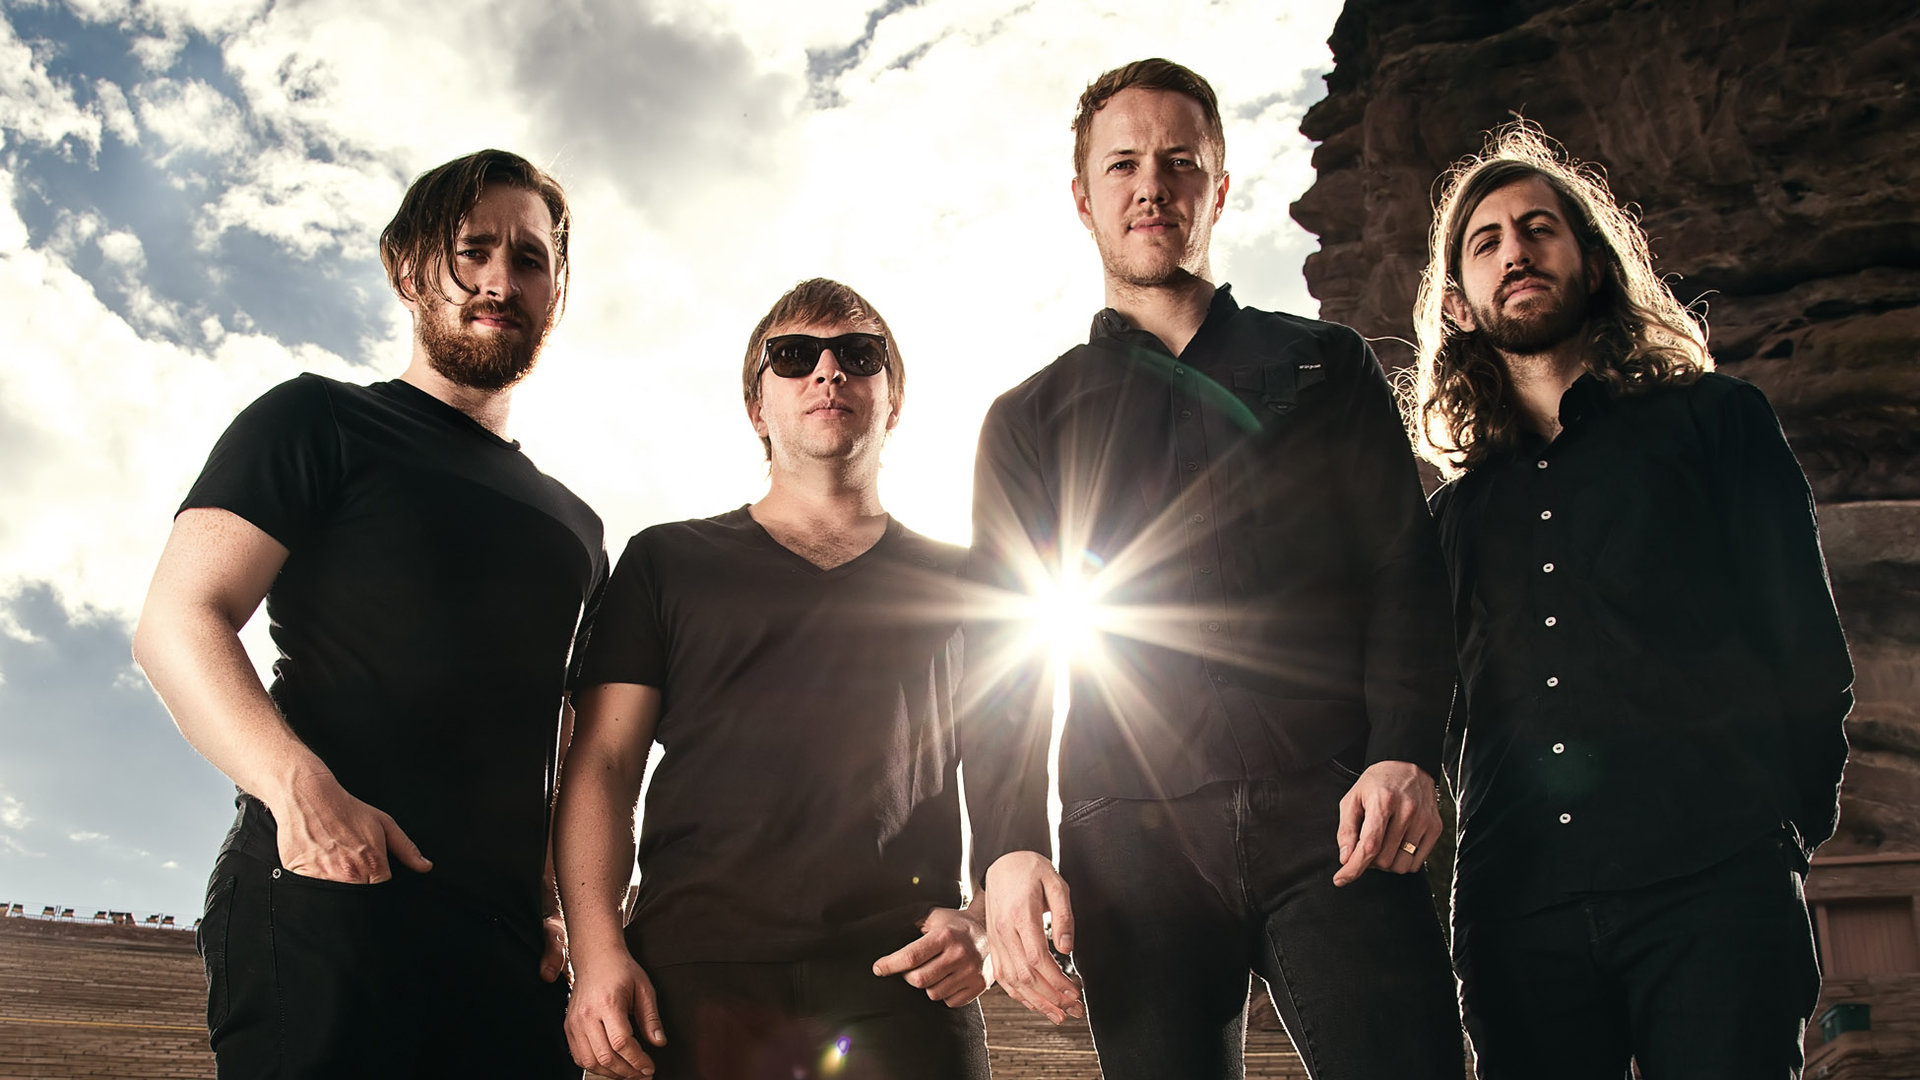 Free Imagine Dragons high quality wallpaper ID:324290 for full hd computer